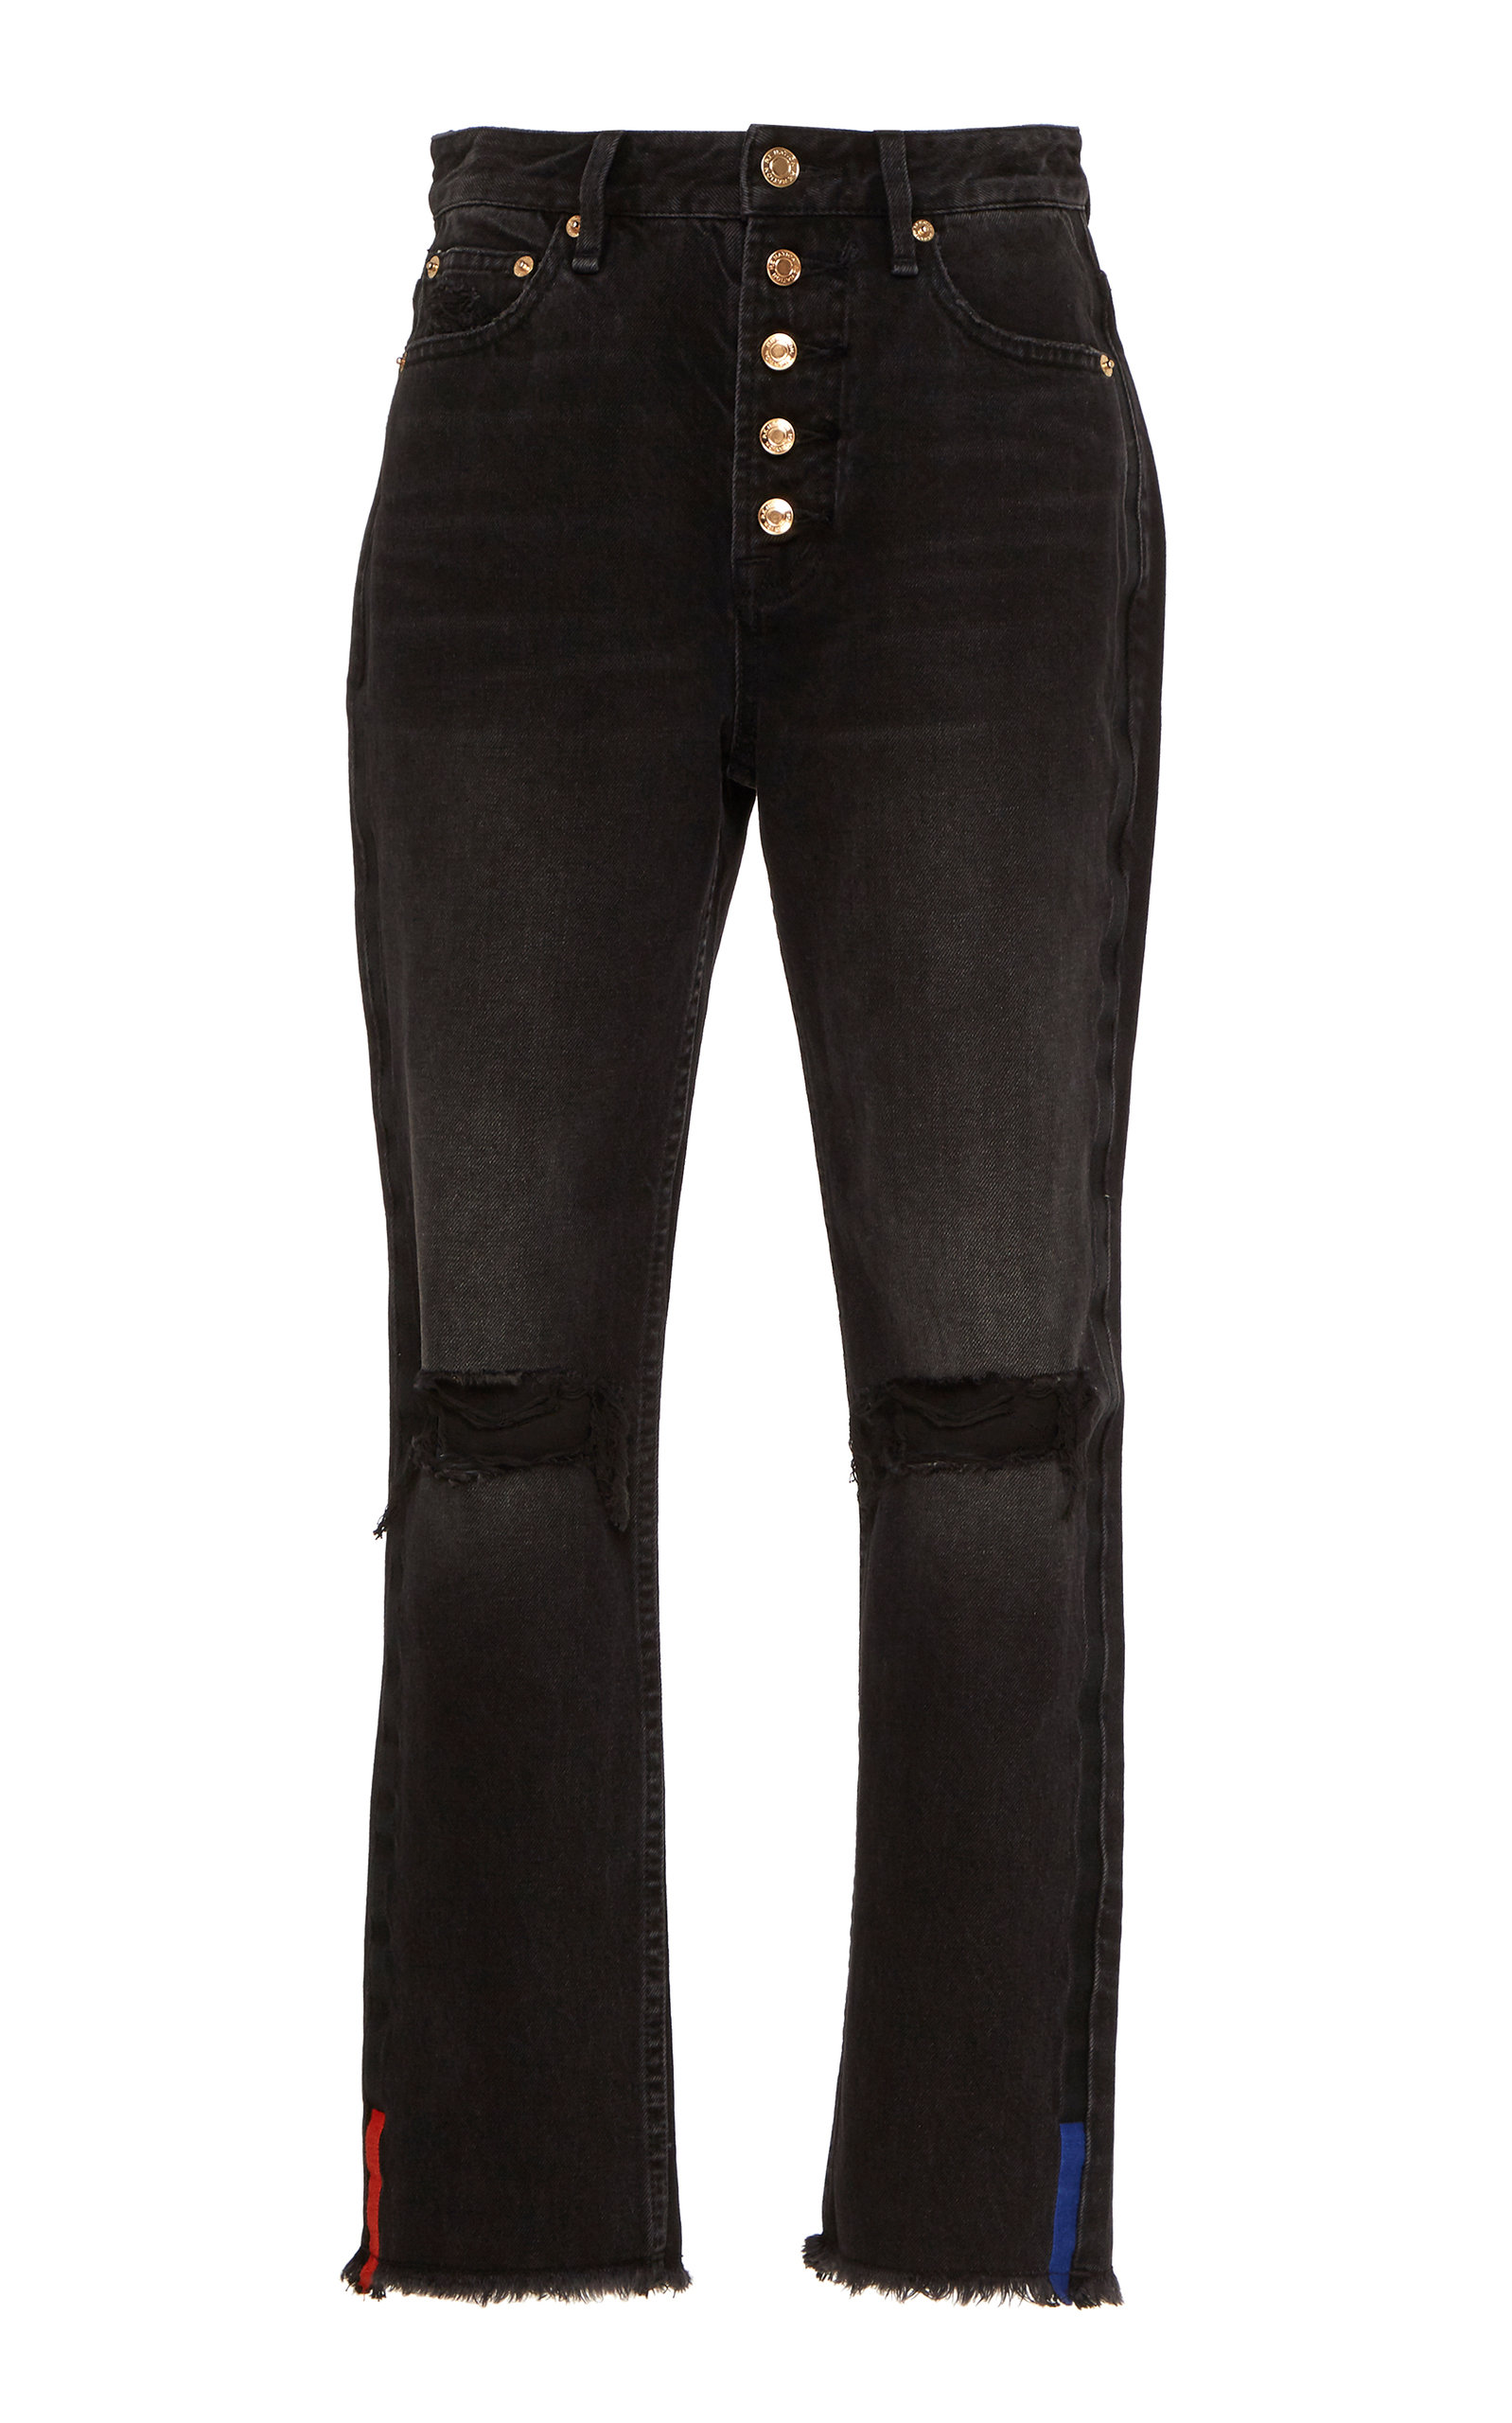 P.e Nation Jeans The 1986 High-Rise Skinny Jean